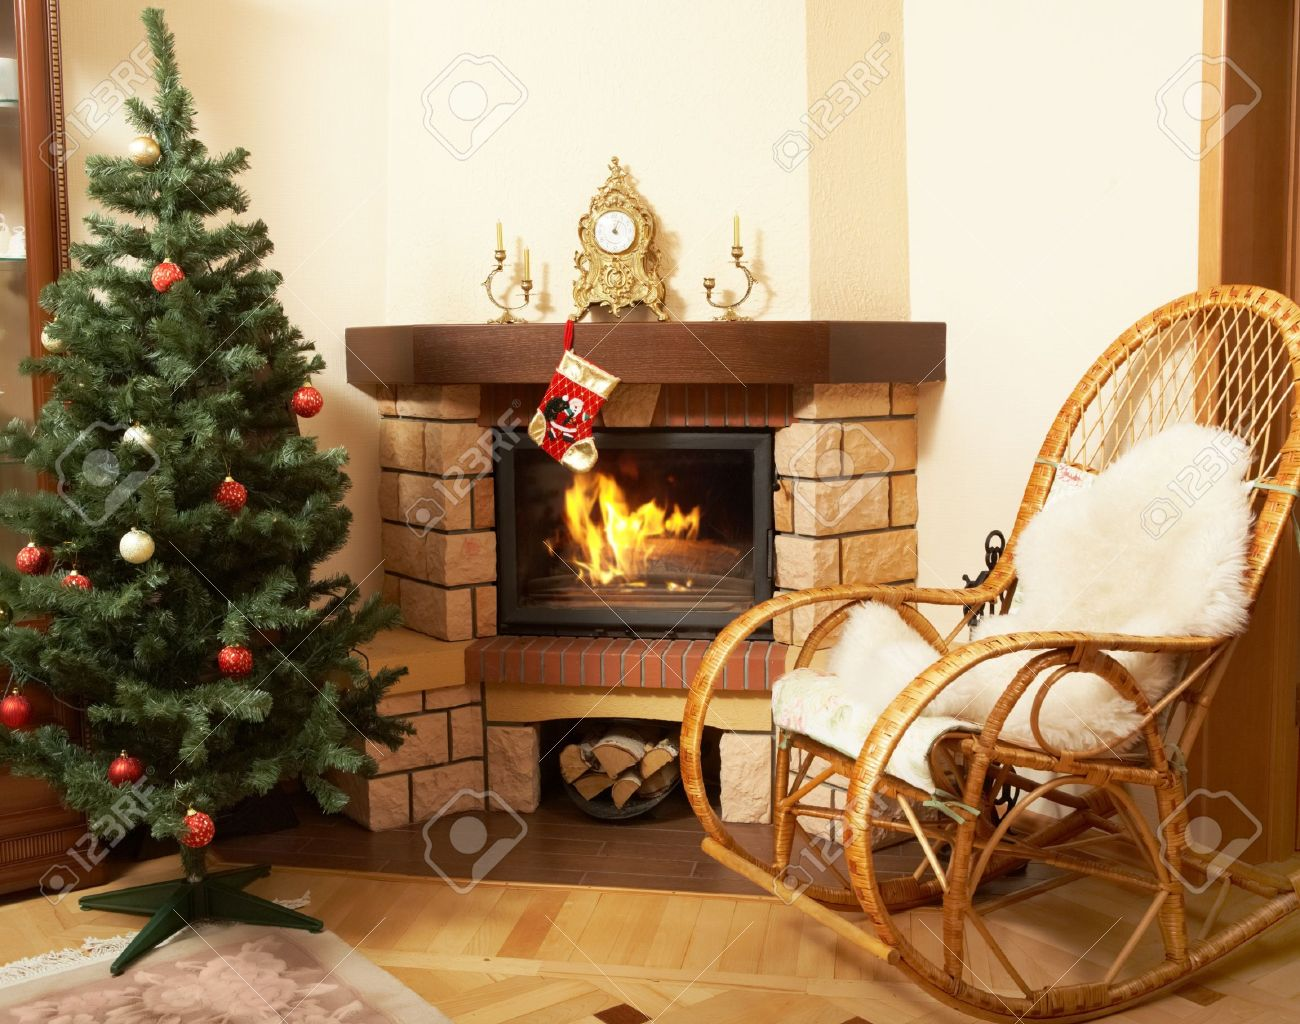 Image Of House Room With Rocking-chair, Christmas Tree, Fireplace ...